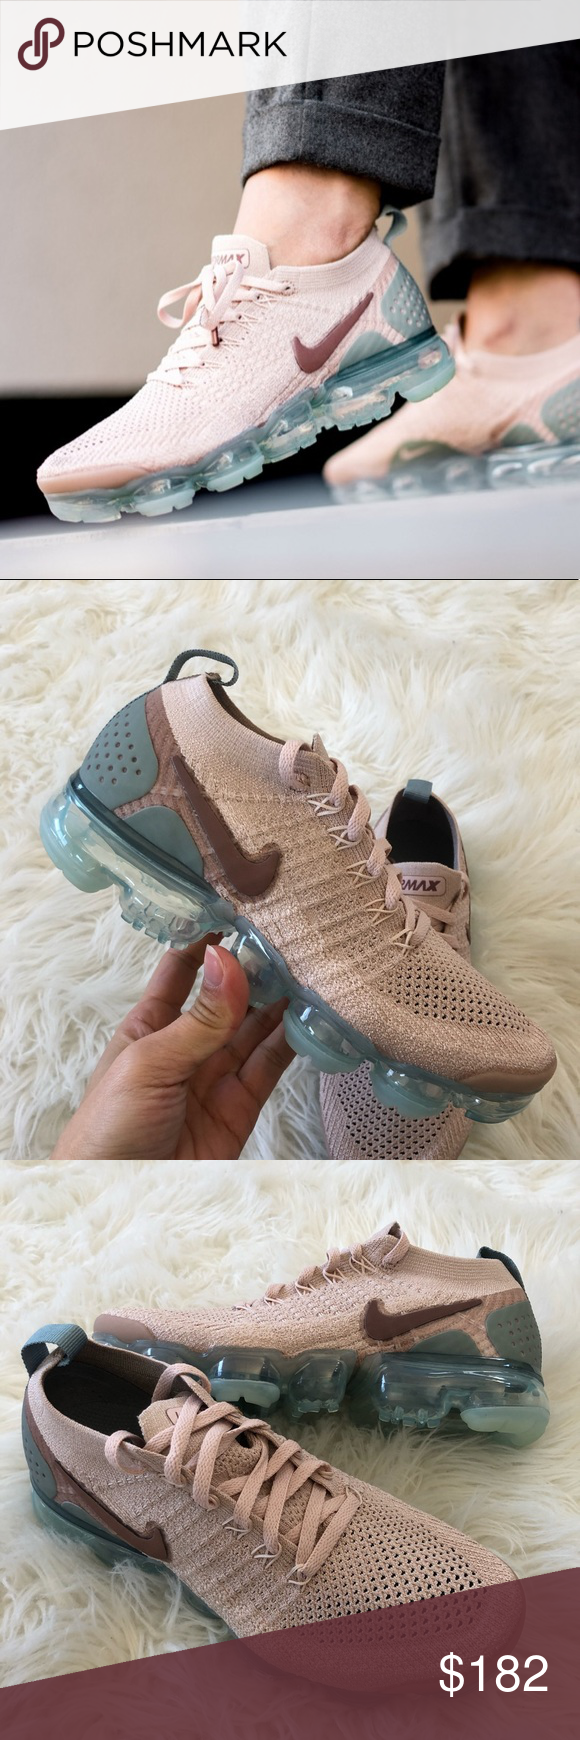 detailed look 31d4d 7ab70 💘 New💘 NIKE Air Vapormax Flyknit 2 ~ sz 7.5 brand new no ...